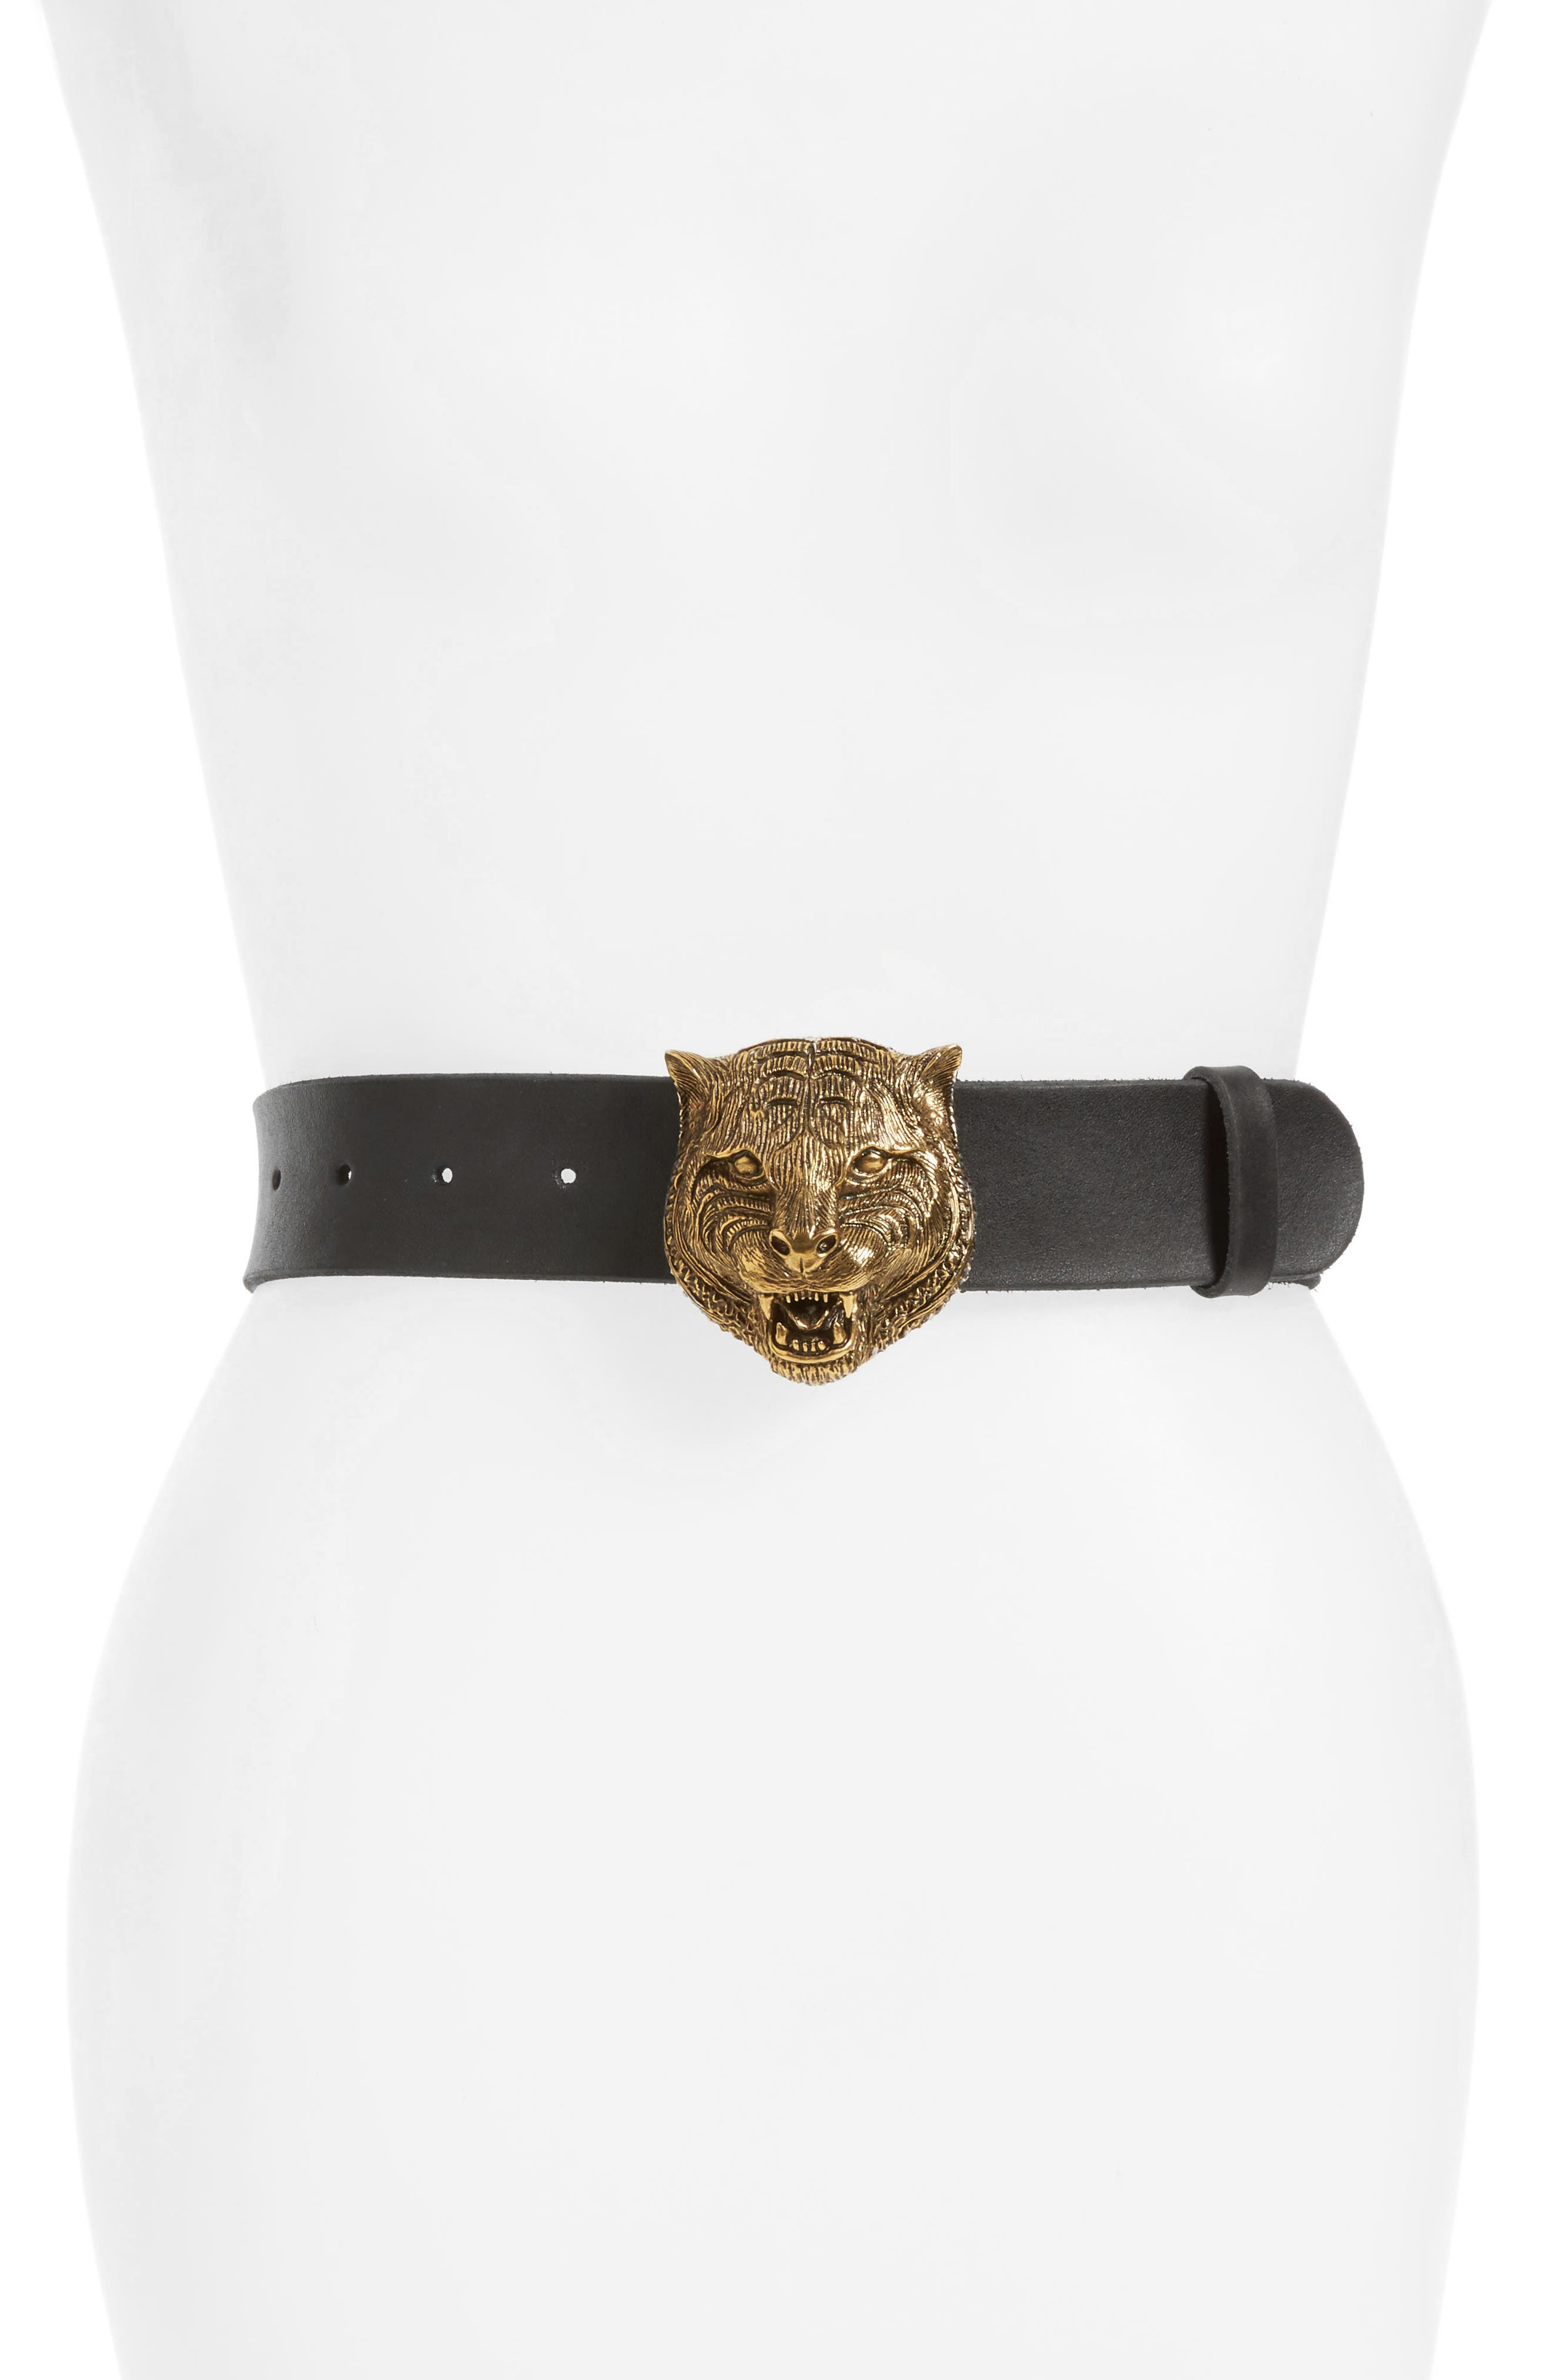 GUCCI,                             Tiger Buckle Leather Belt,                             Main thumbnail 1, color,                             001